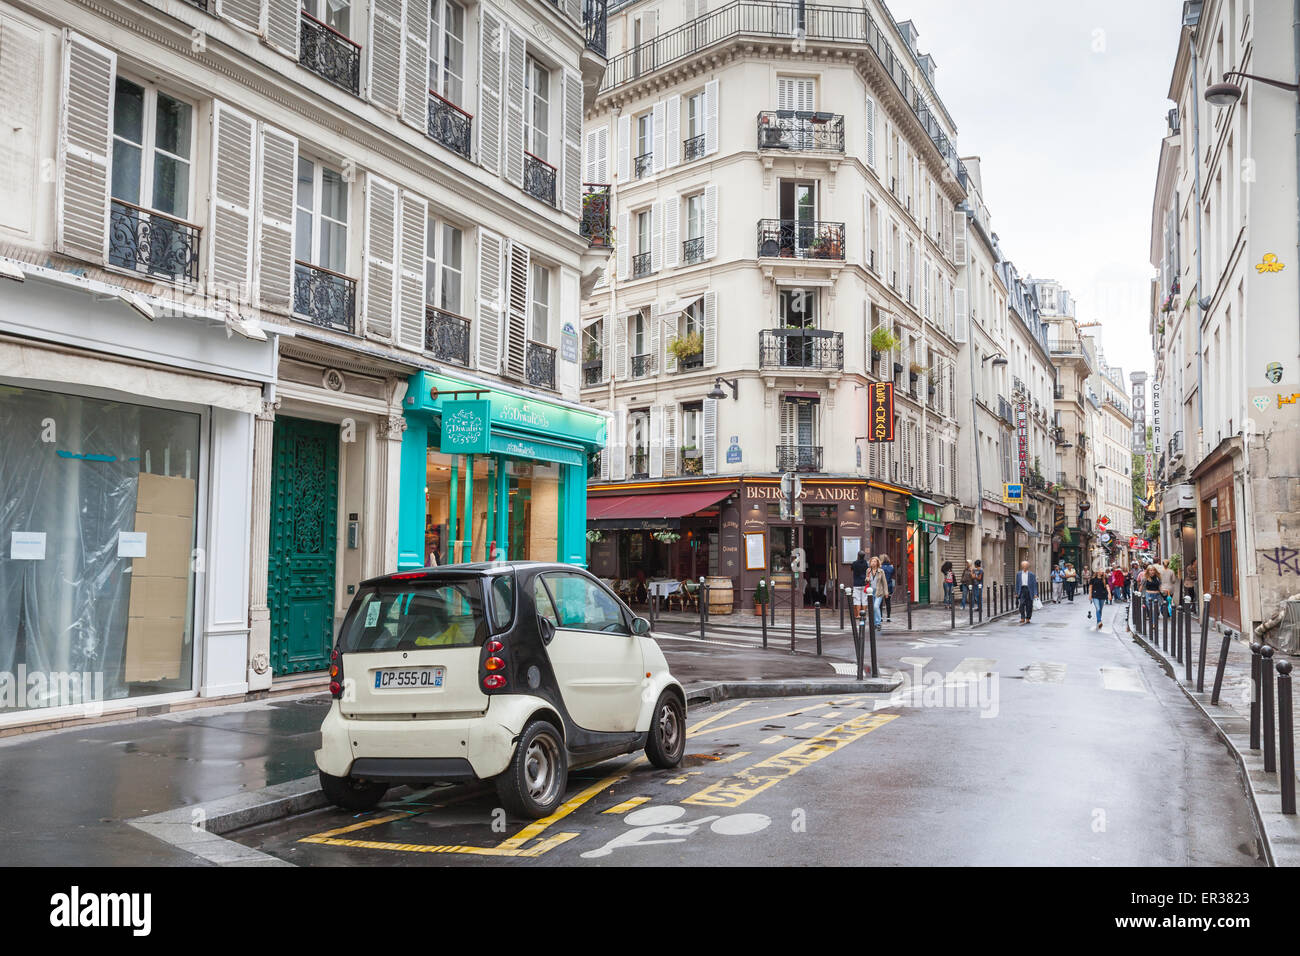 Paris, France - August 10, 2014: small white Smart car stands on the street in Paris, tourists walk on Rue St. Andre Stock Photo